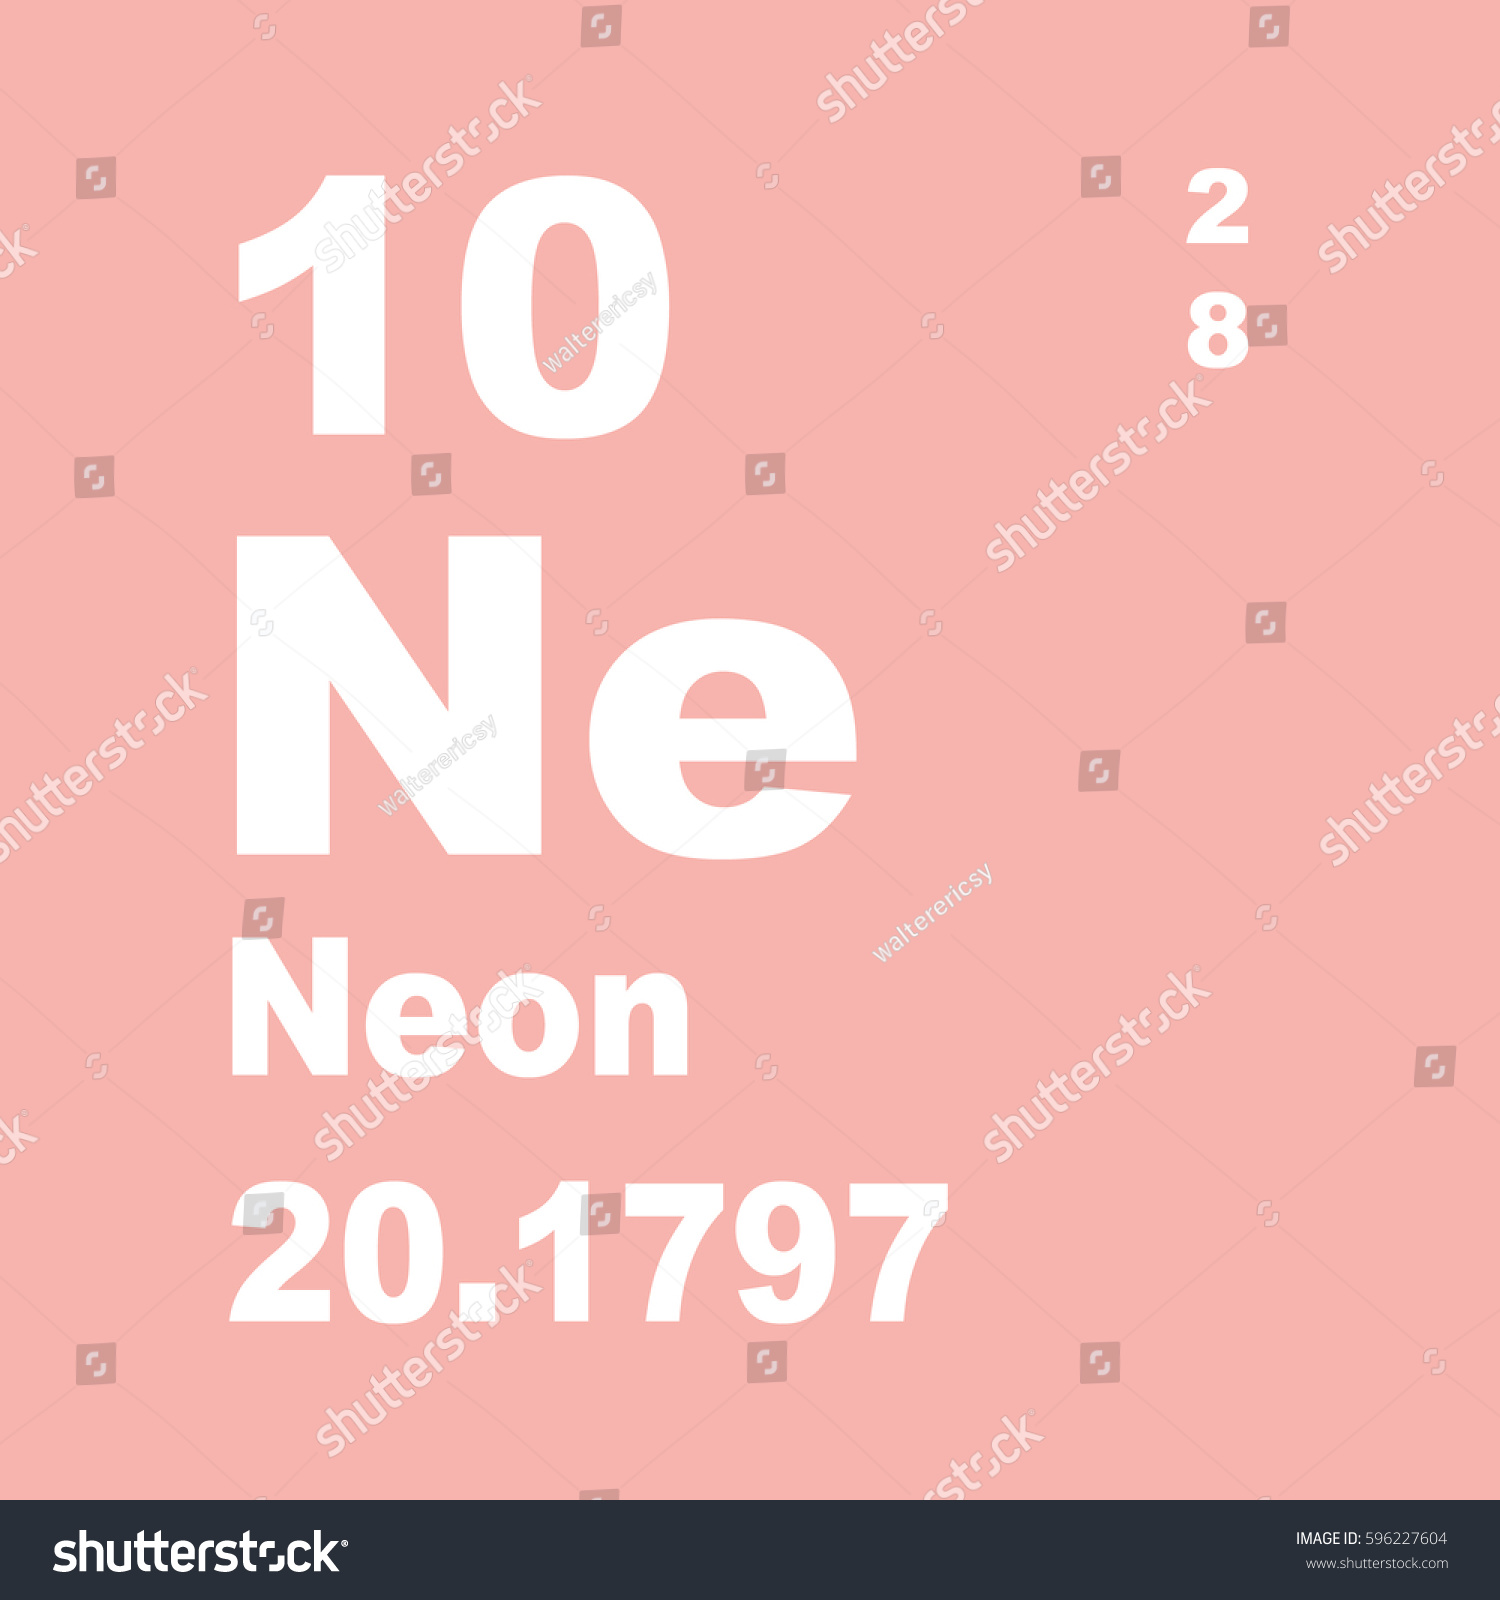 Periodic table neon facts choice image periodic table images who discovered neon on the periodic table image collections periodic table neon facts choice image periodic gamestrikefo Images